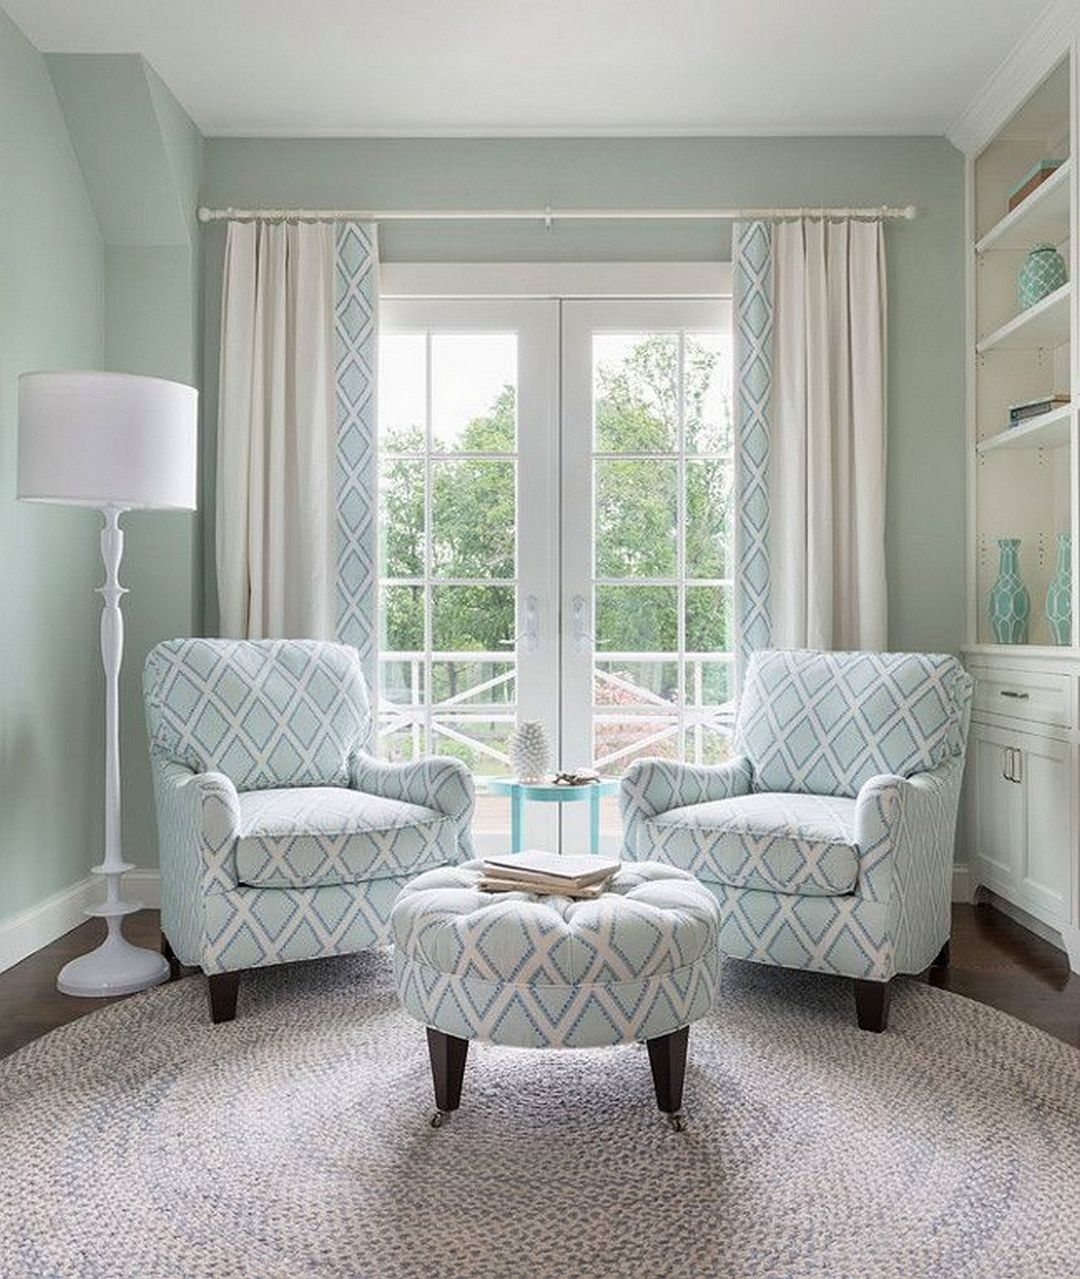 Beautiful Bedroom Sitting Areas: Beach House: A Single-Family Residence With A Variety Of